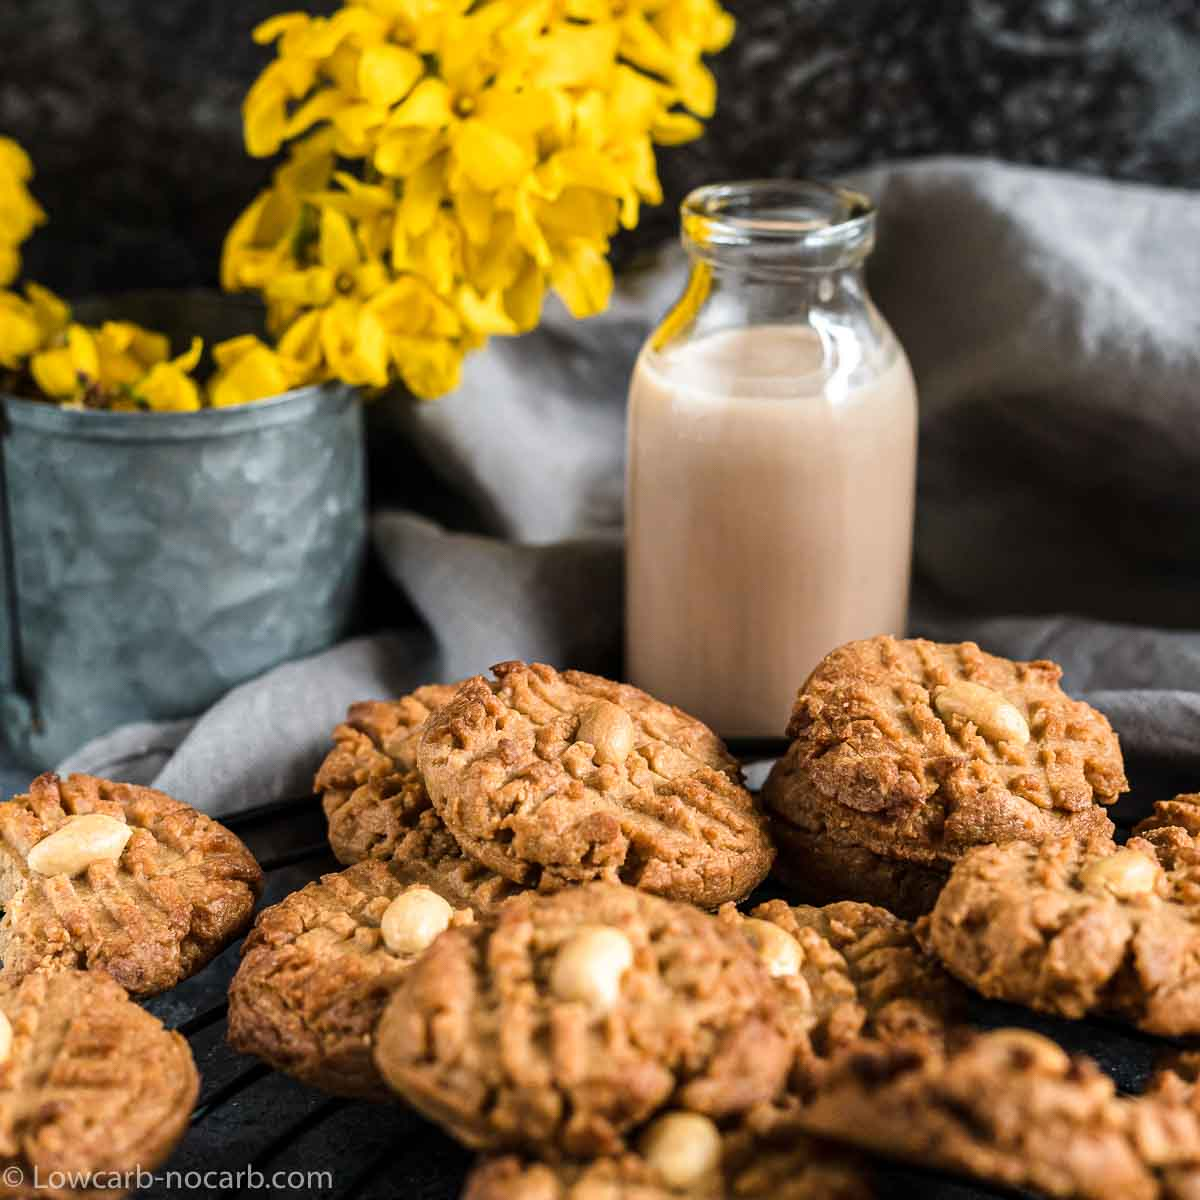 Eas Peanut Butter Cookies spread with peanuts on top